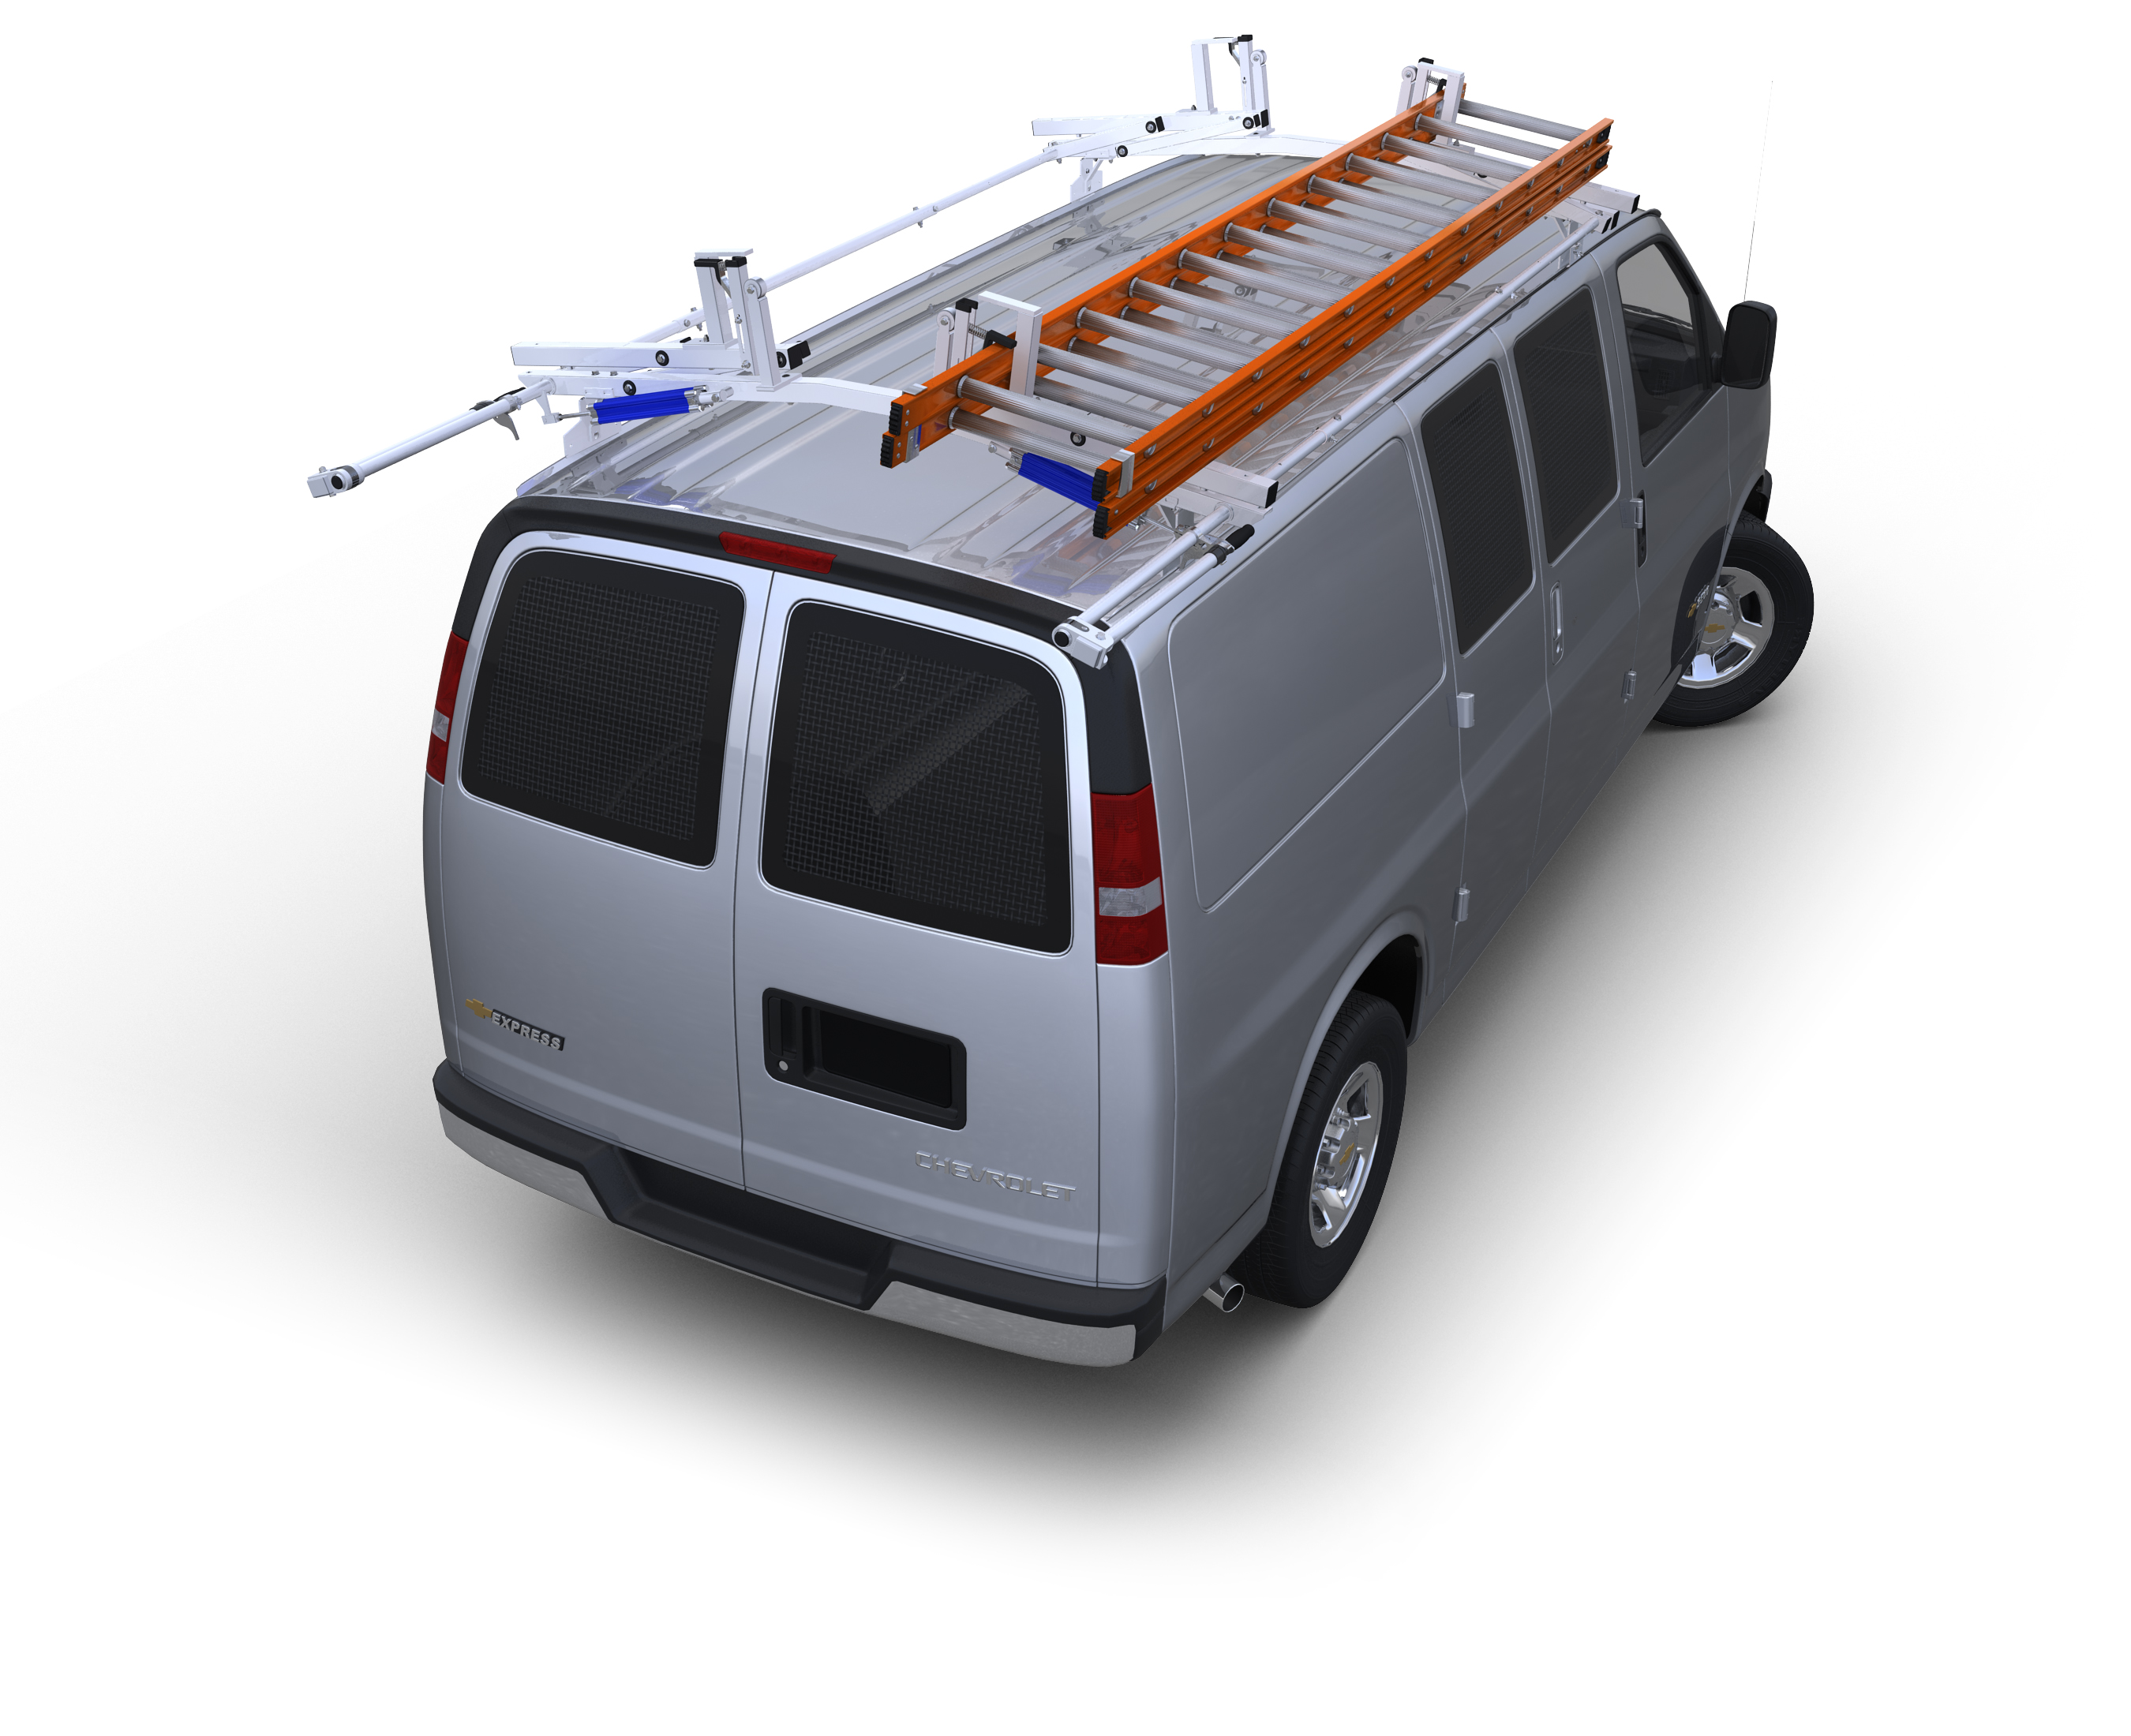 Topper Hot Dip Galvanized 8' Cargo Carrier Rack for the Nissan NV200 & Chevy City Express